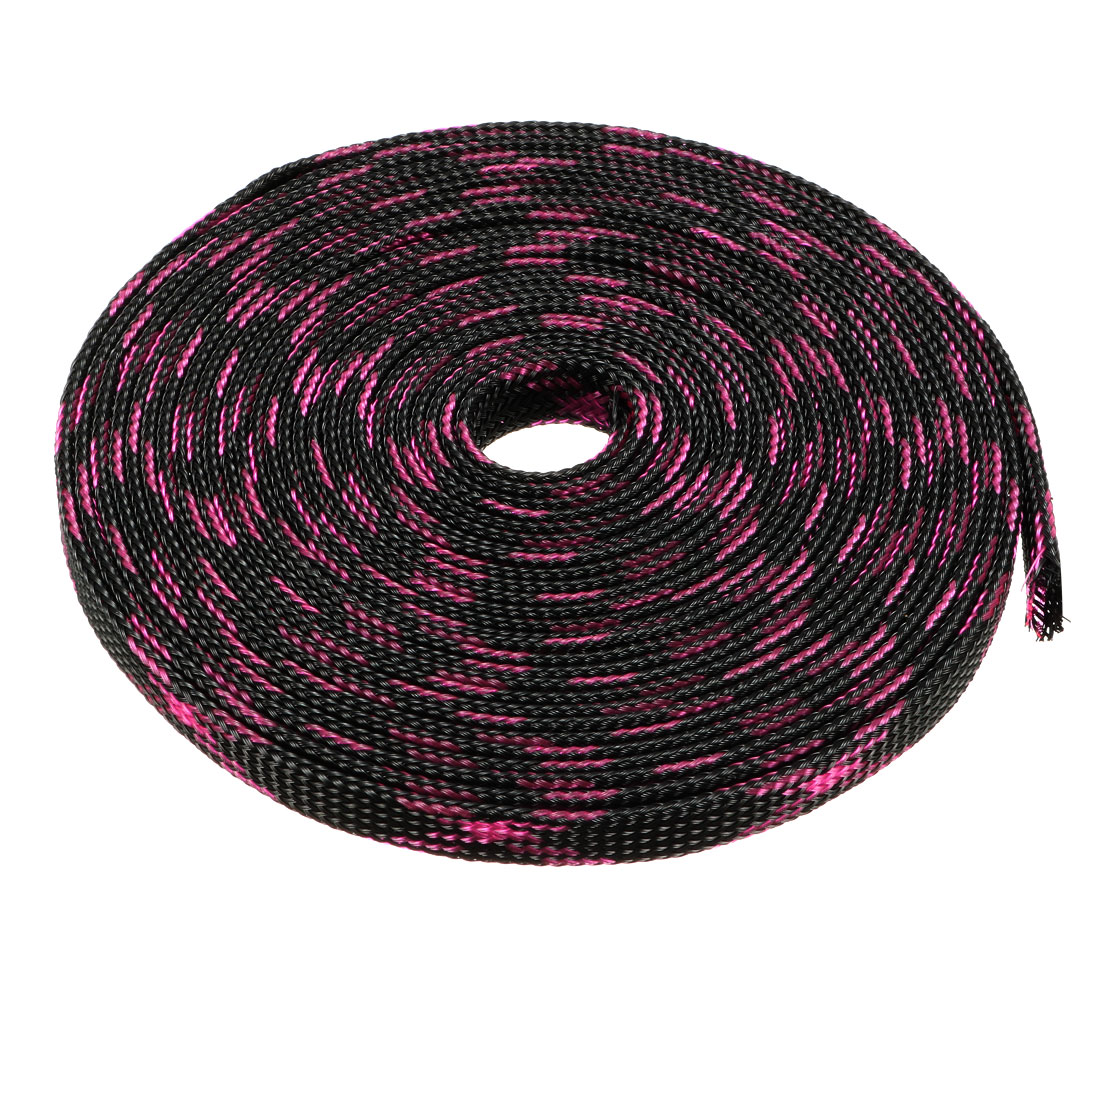 4mm Dia Tight Braided PET Expandable Sleeving Cable Wrap Sheath Black Pink 10M Length